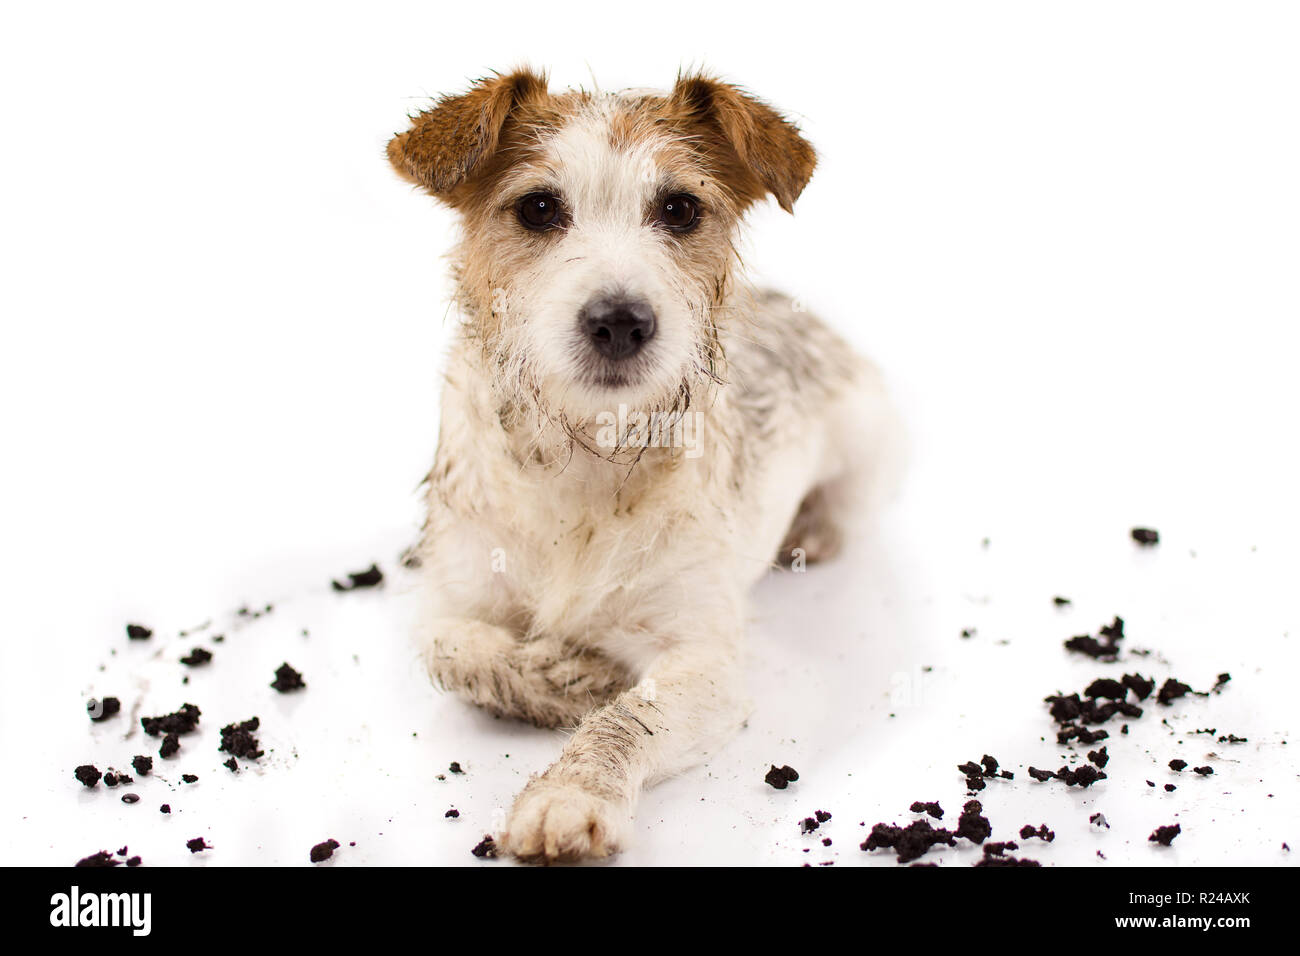 DIRTY JACK RUSSELL DOG LYING DOWN AND LOOKING AT CAMERA AFTER PLAY IN A MUD PUDDLE ISOLATED ON WHITE BACKGROUND. STUDIO SHOT. COPY SPACE. - Stock Image